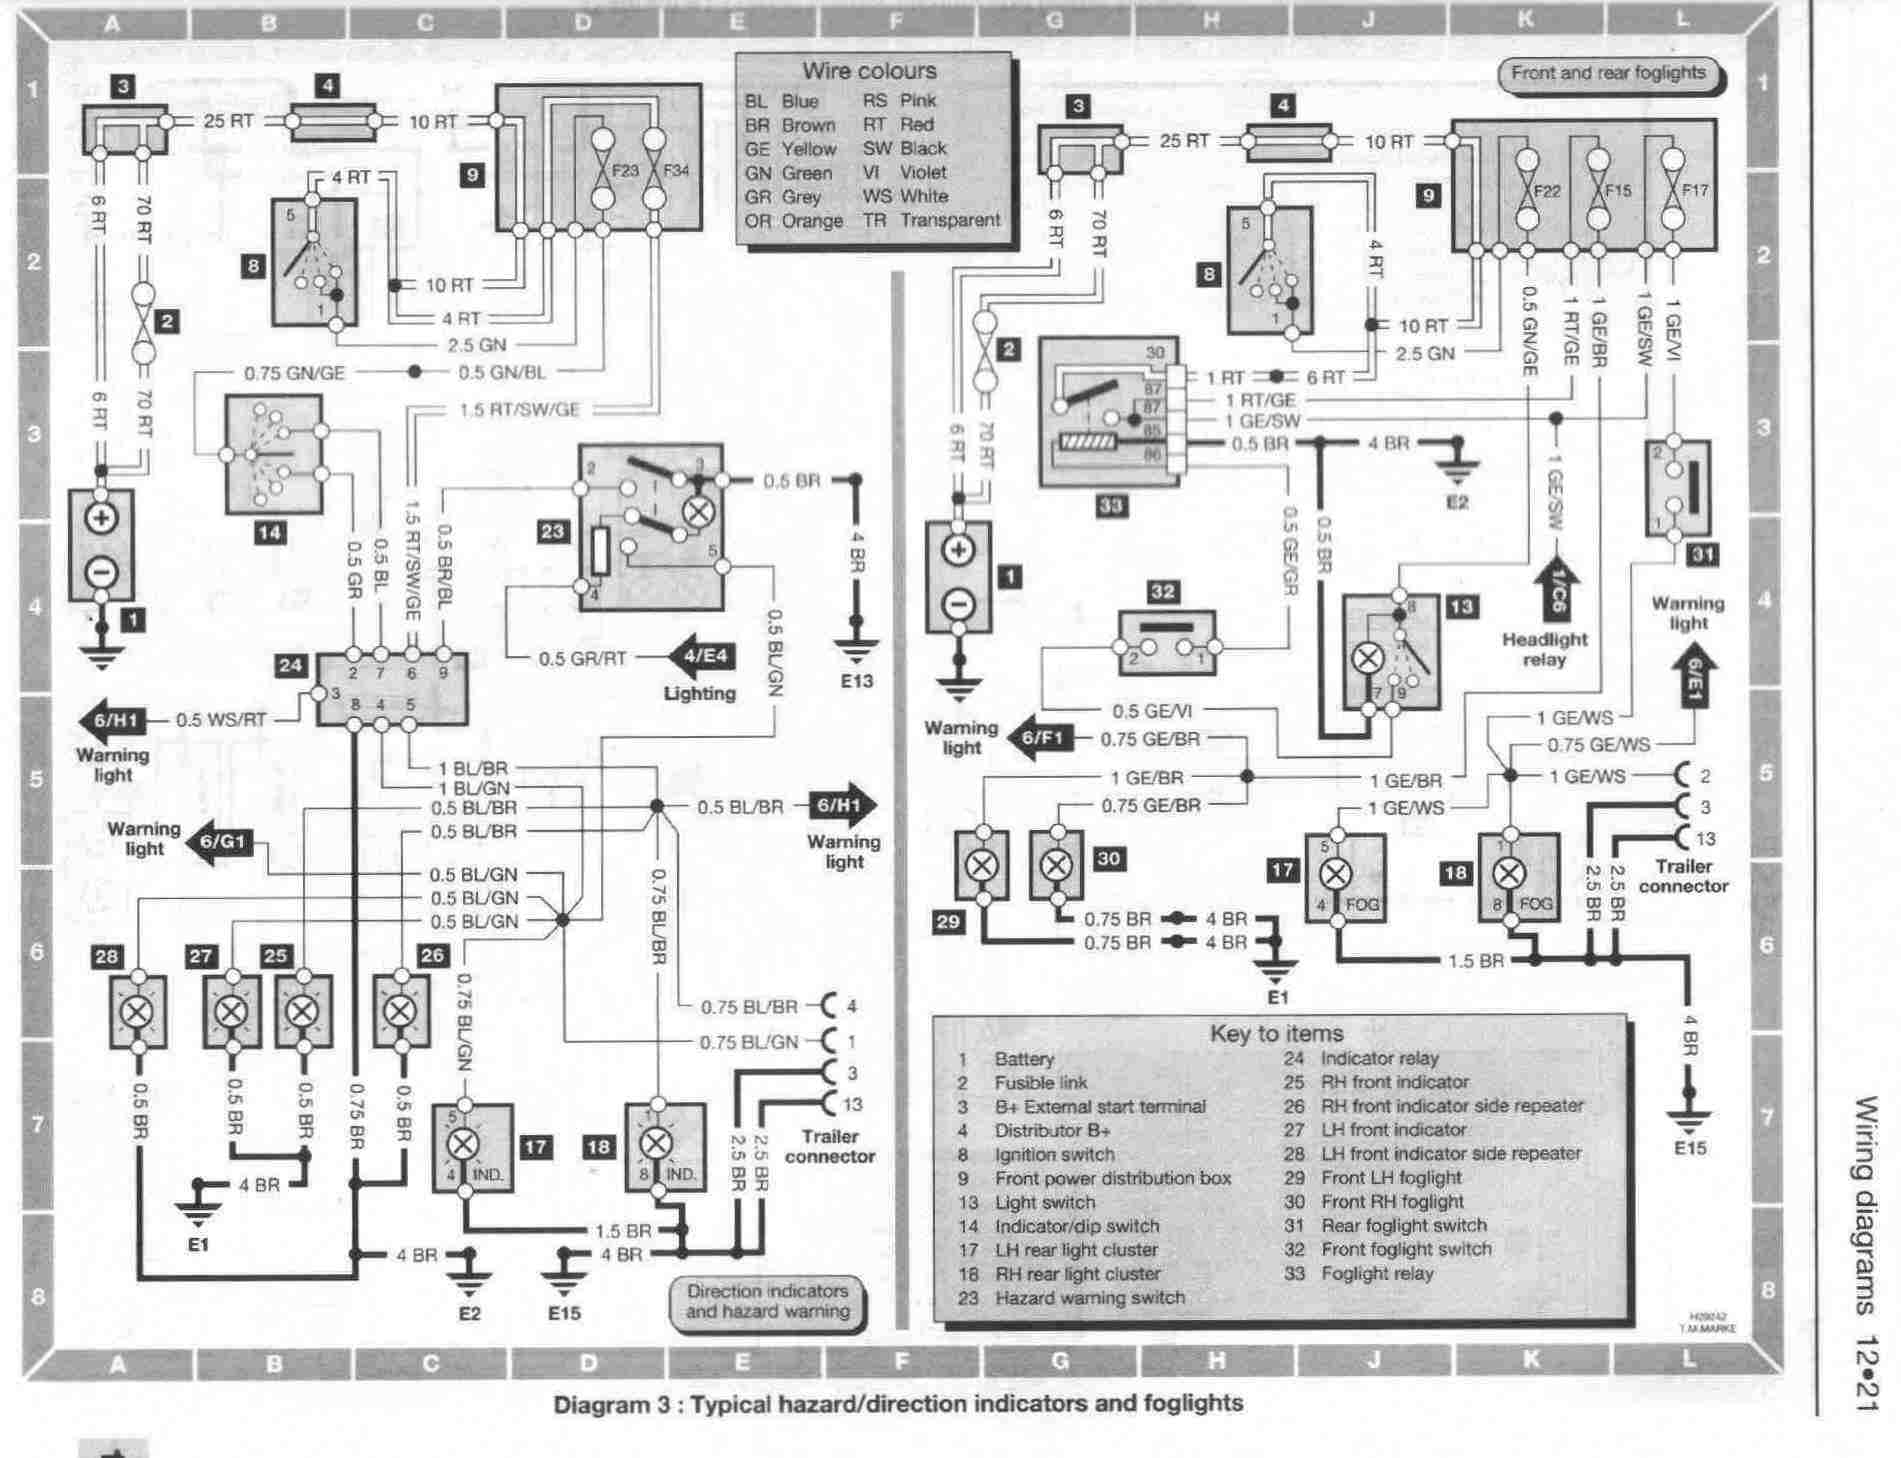 bmw e46 headlight wiring diagram bmw discover your wiring electric window wiring diagram 1999 ihc eagle